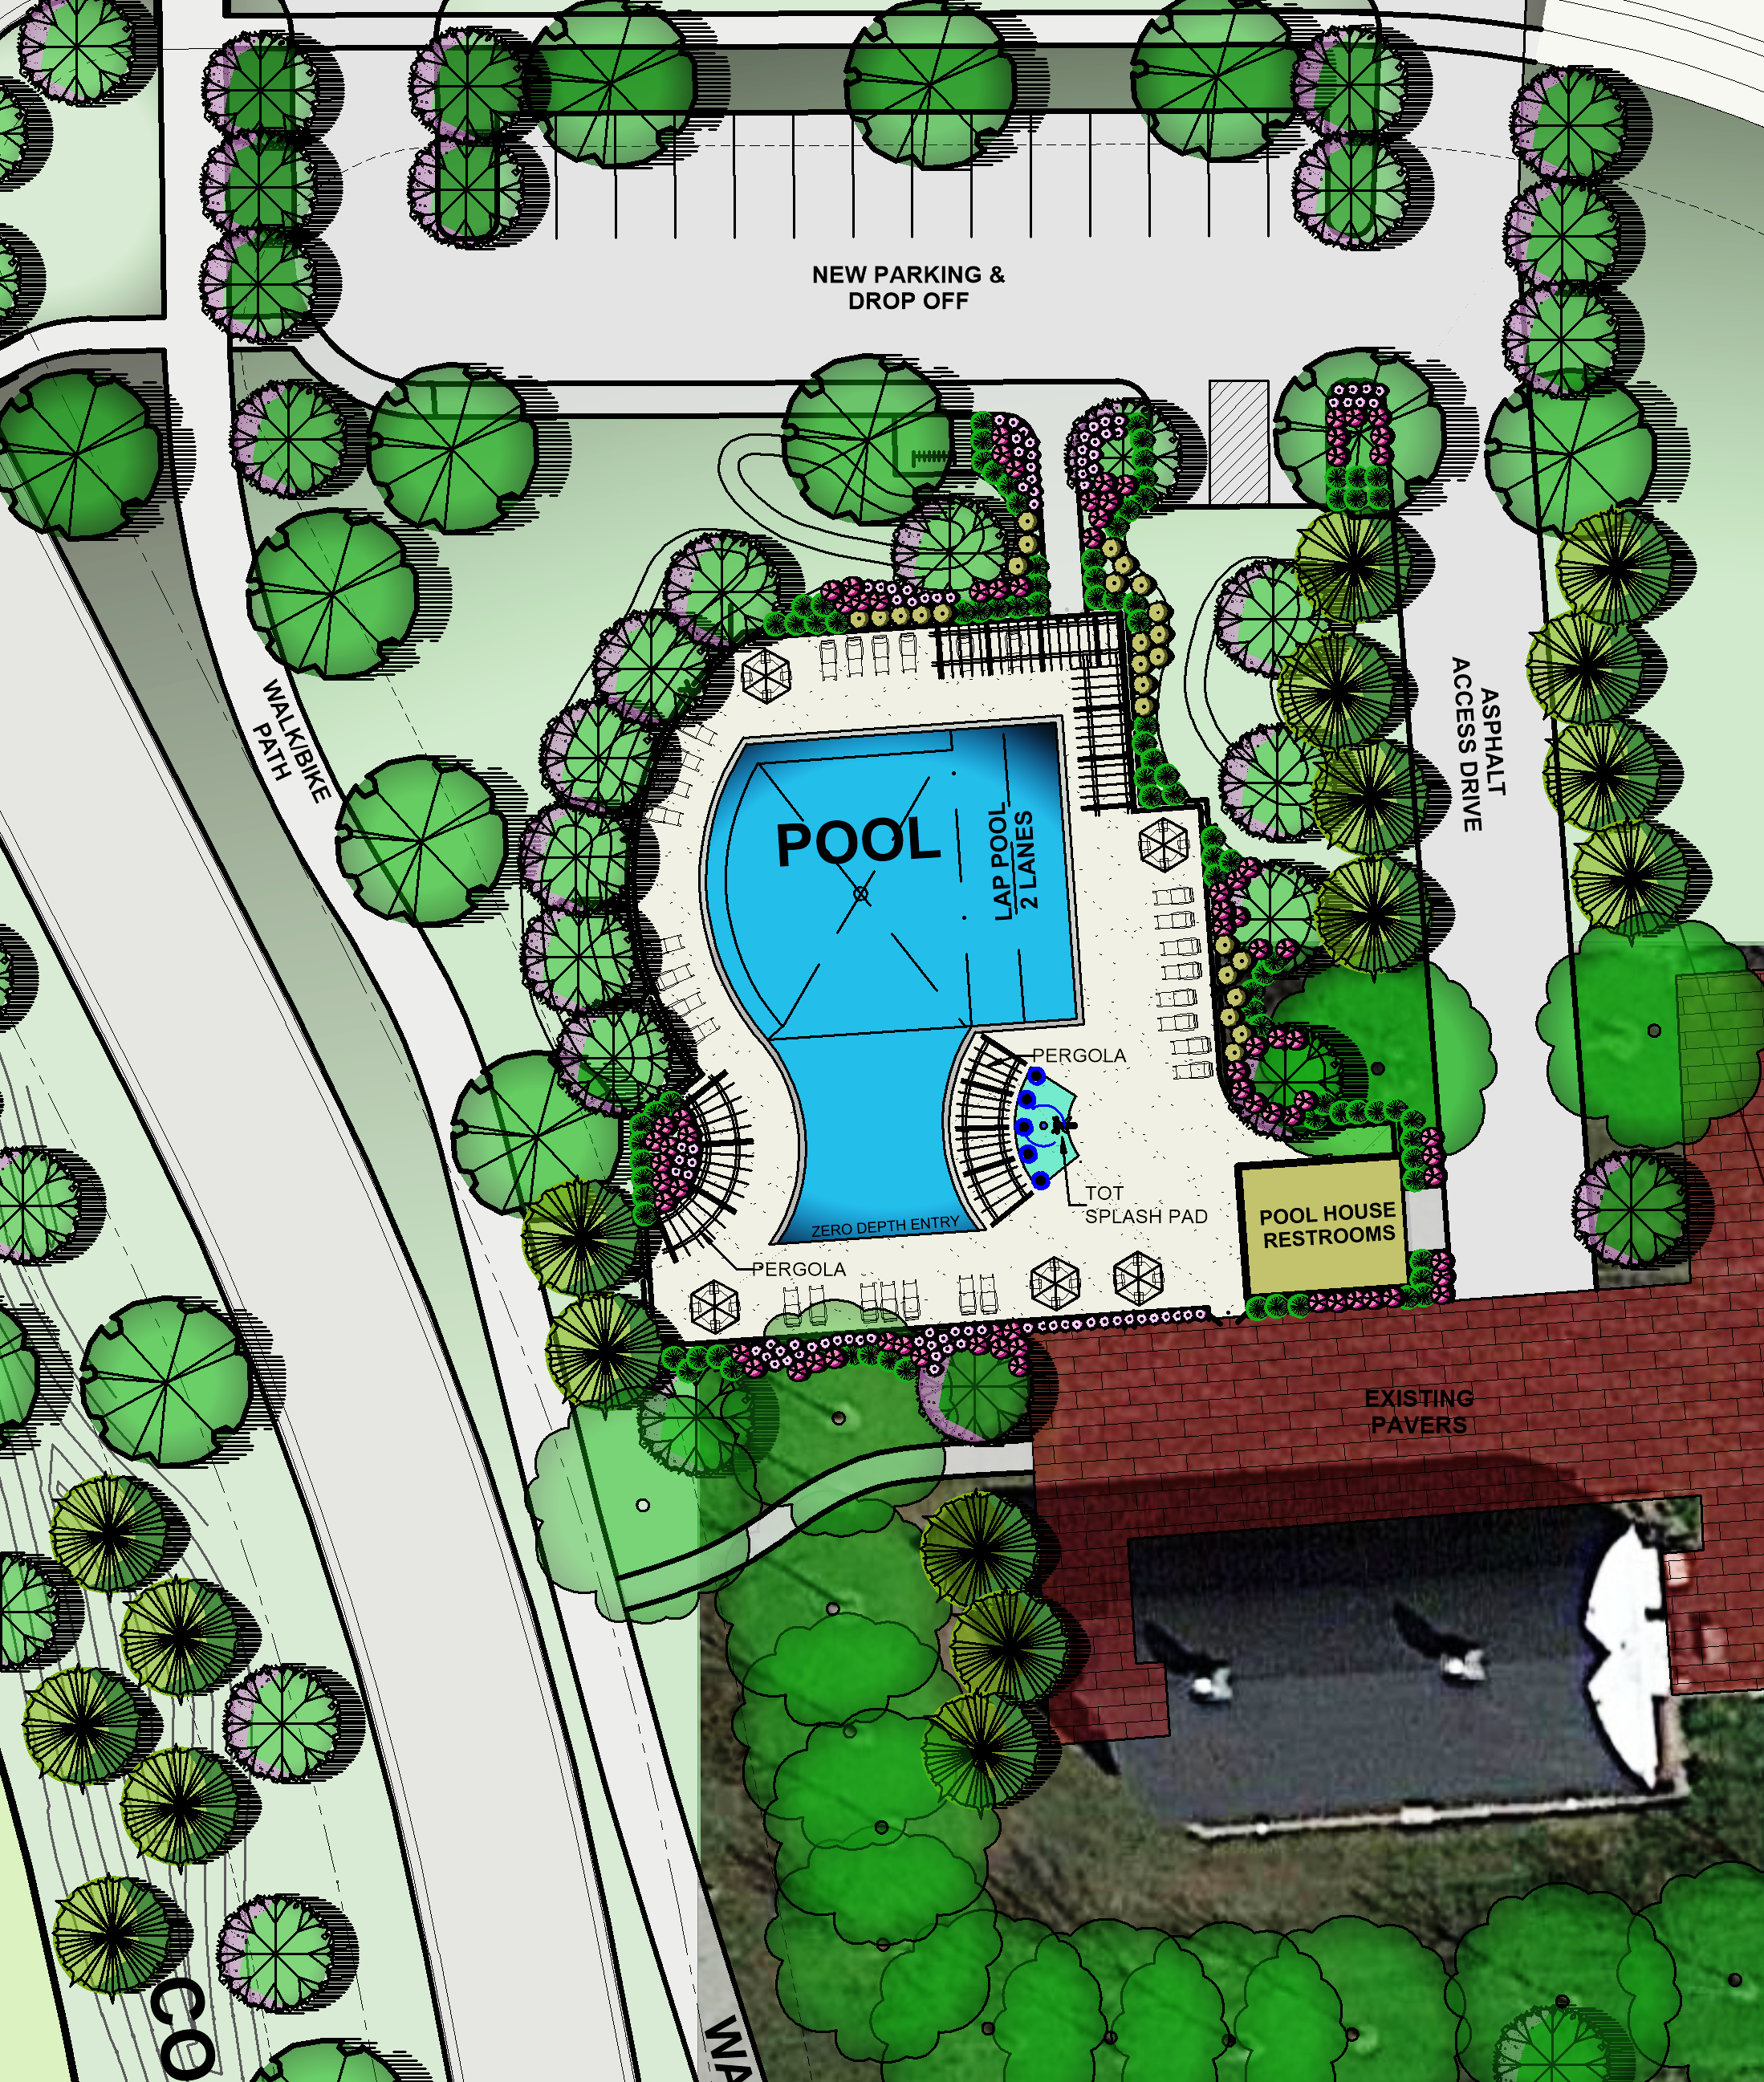 Detail Plan of Community Pool Area